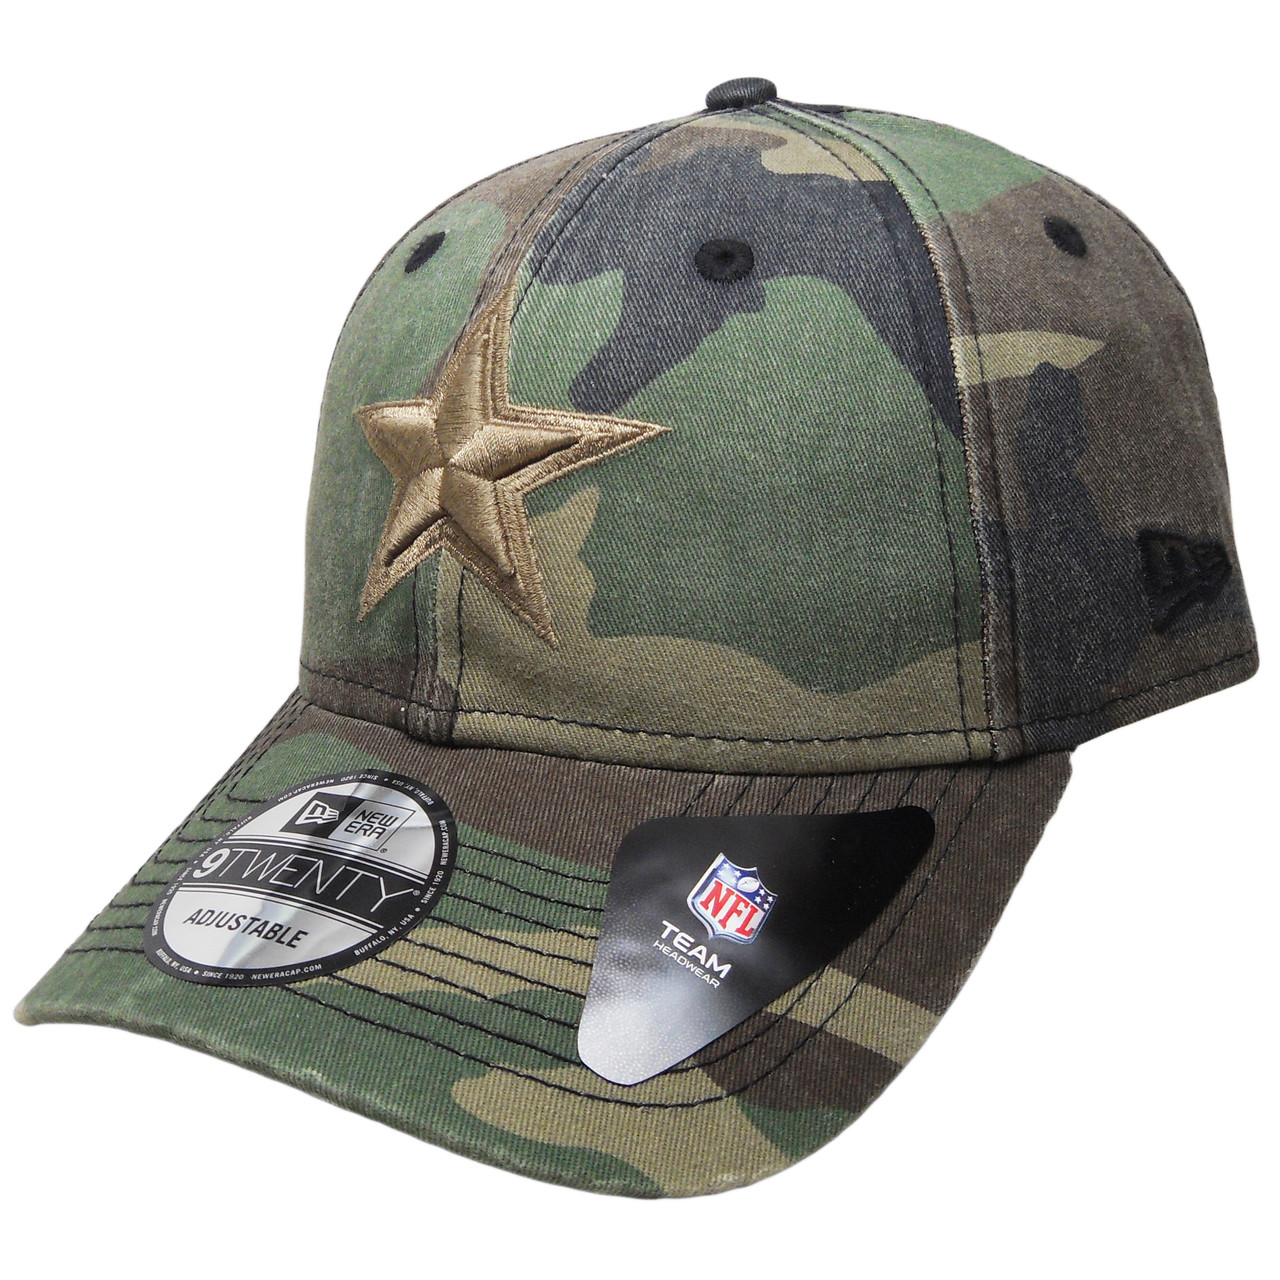 c16e5b6813a Dallas Cowboys New Era Core Classic 9Twenty Adjustable Hat - Camouflage.  Larger   More Photos